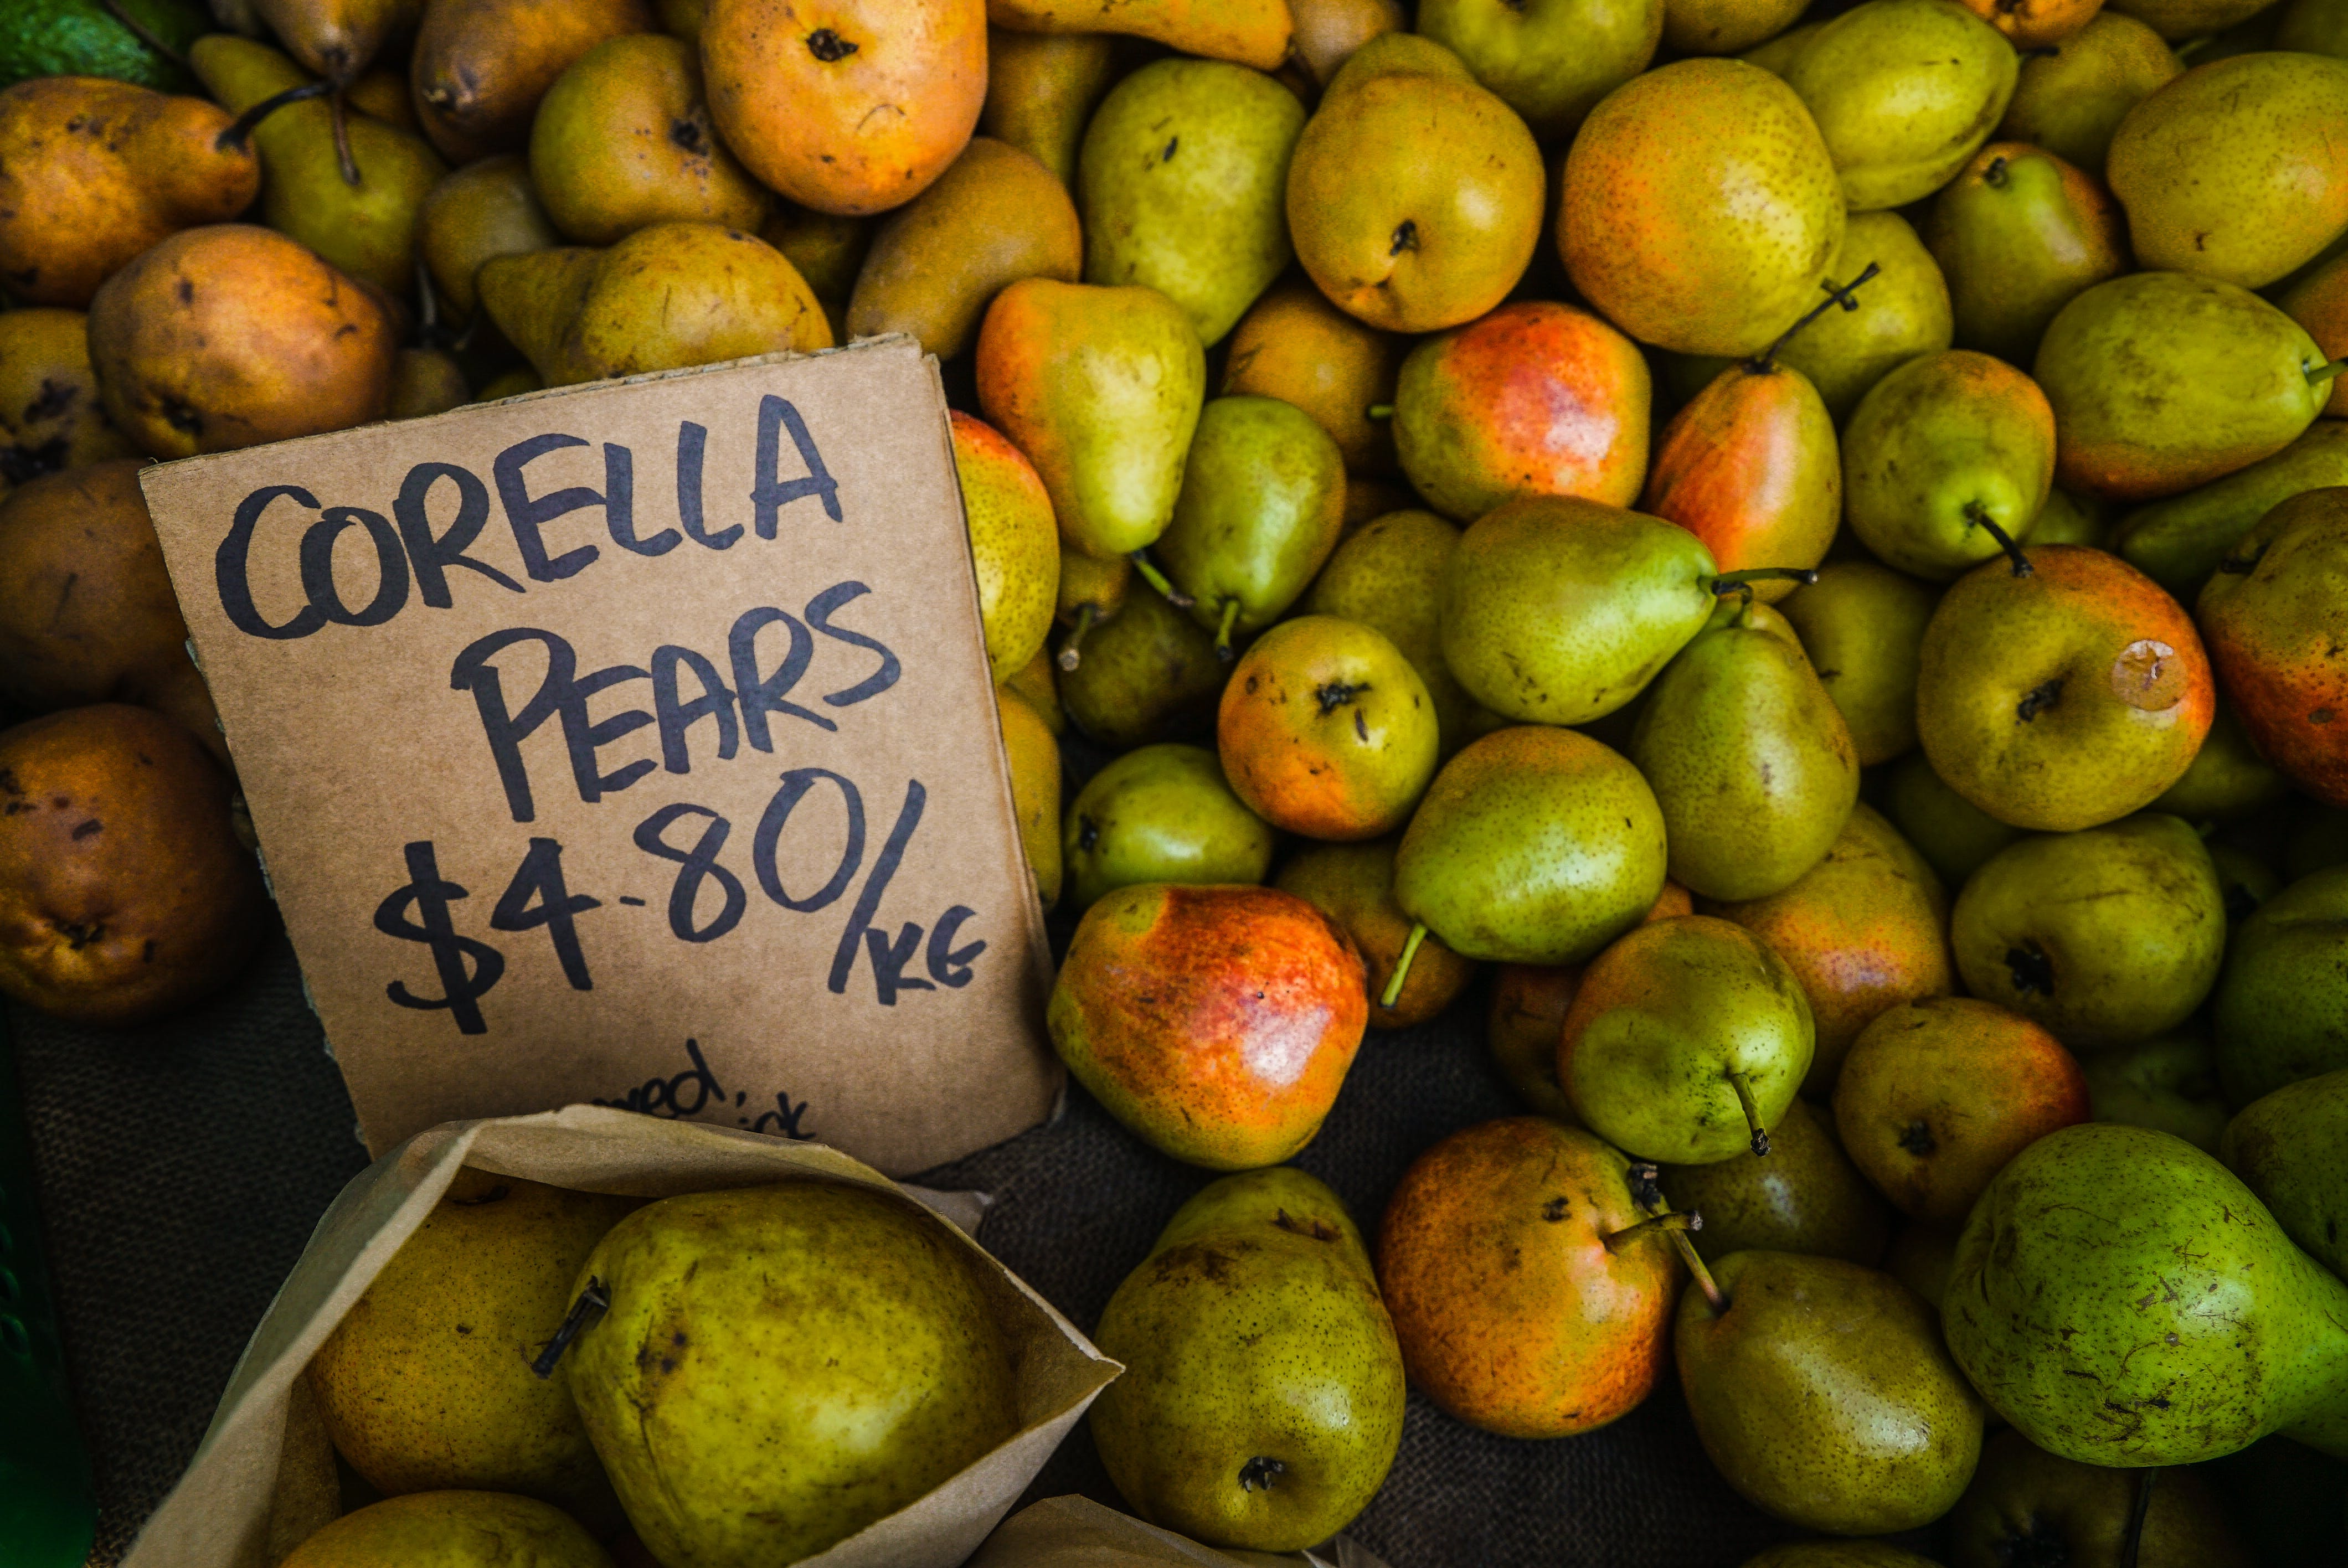 Green-and-orange Corella Pear Fruit Lot